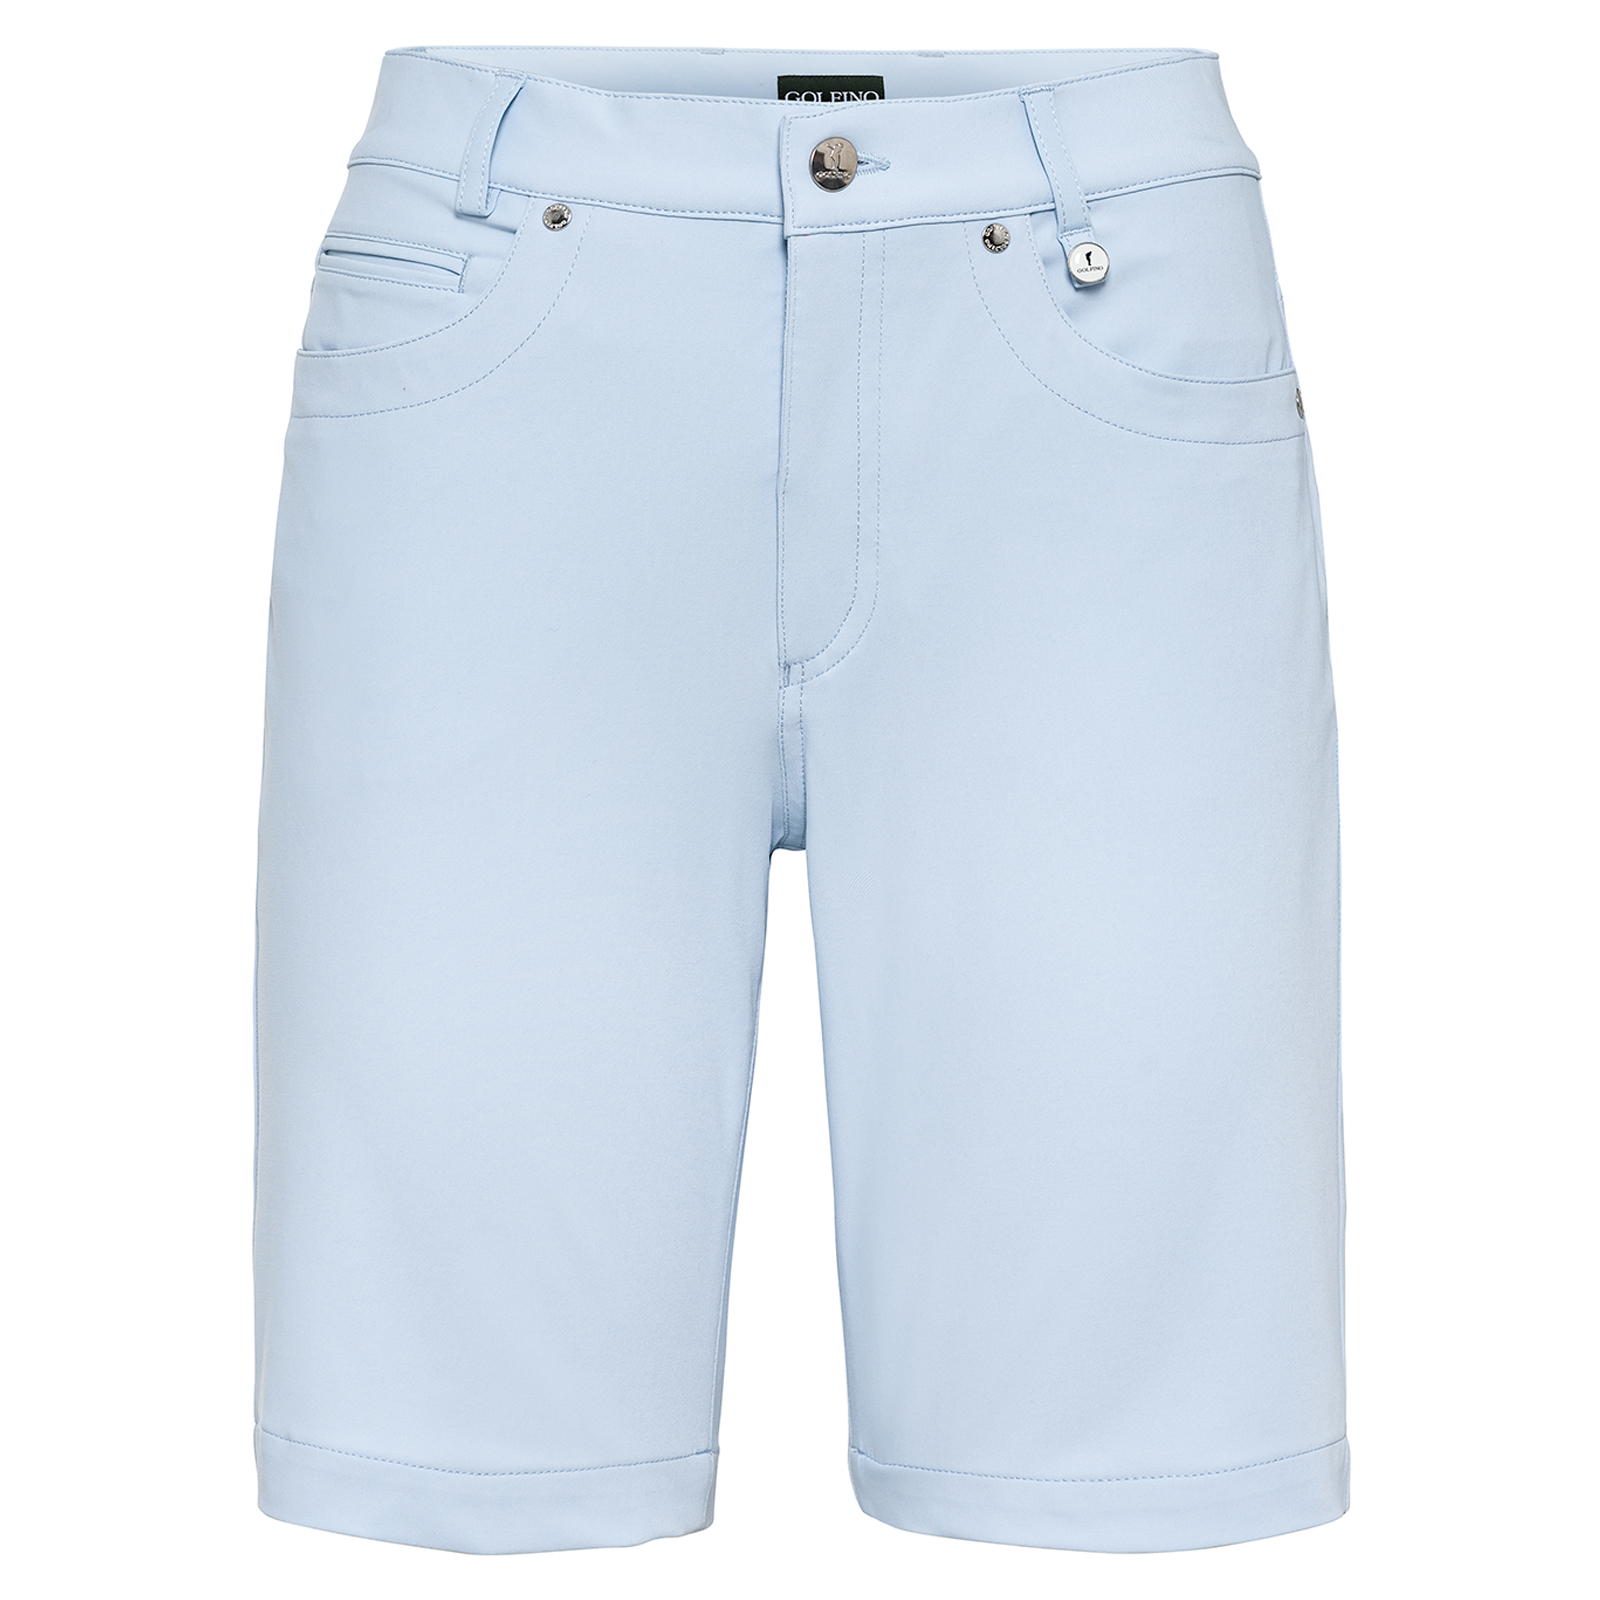 Damen Golf-Bermuda mit Stretch-Anteil